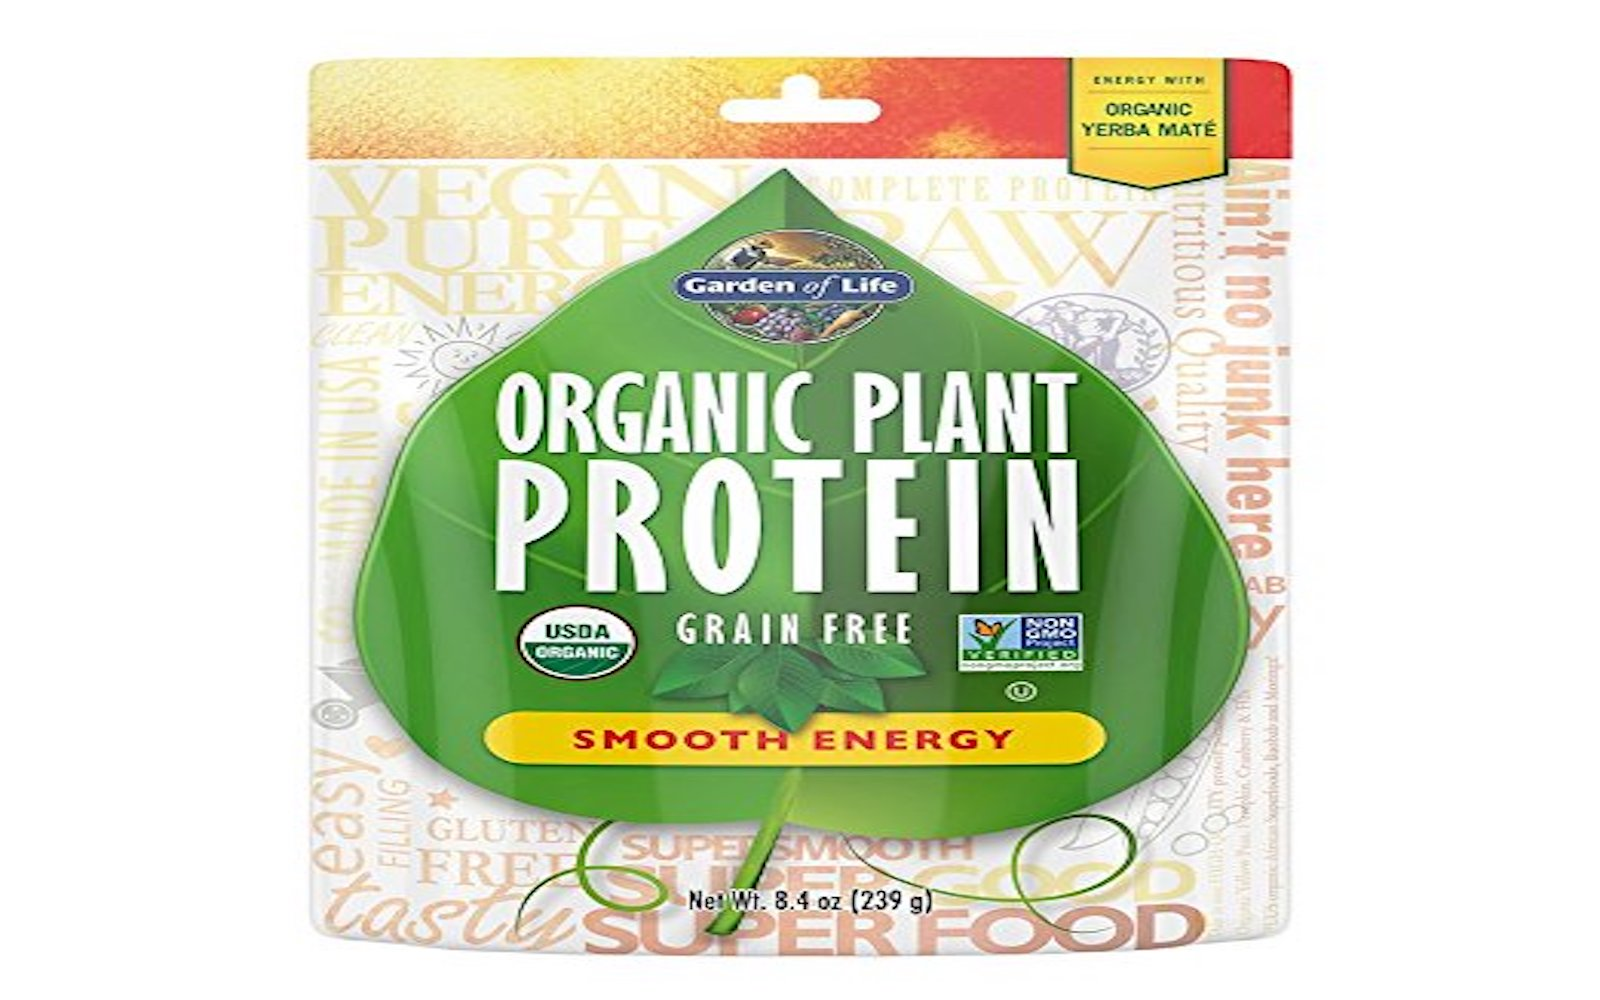 Vegan Plant Based Protein Energy